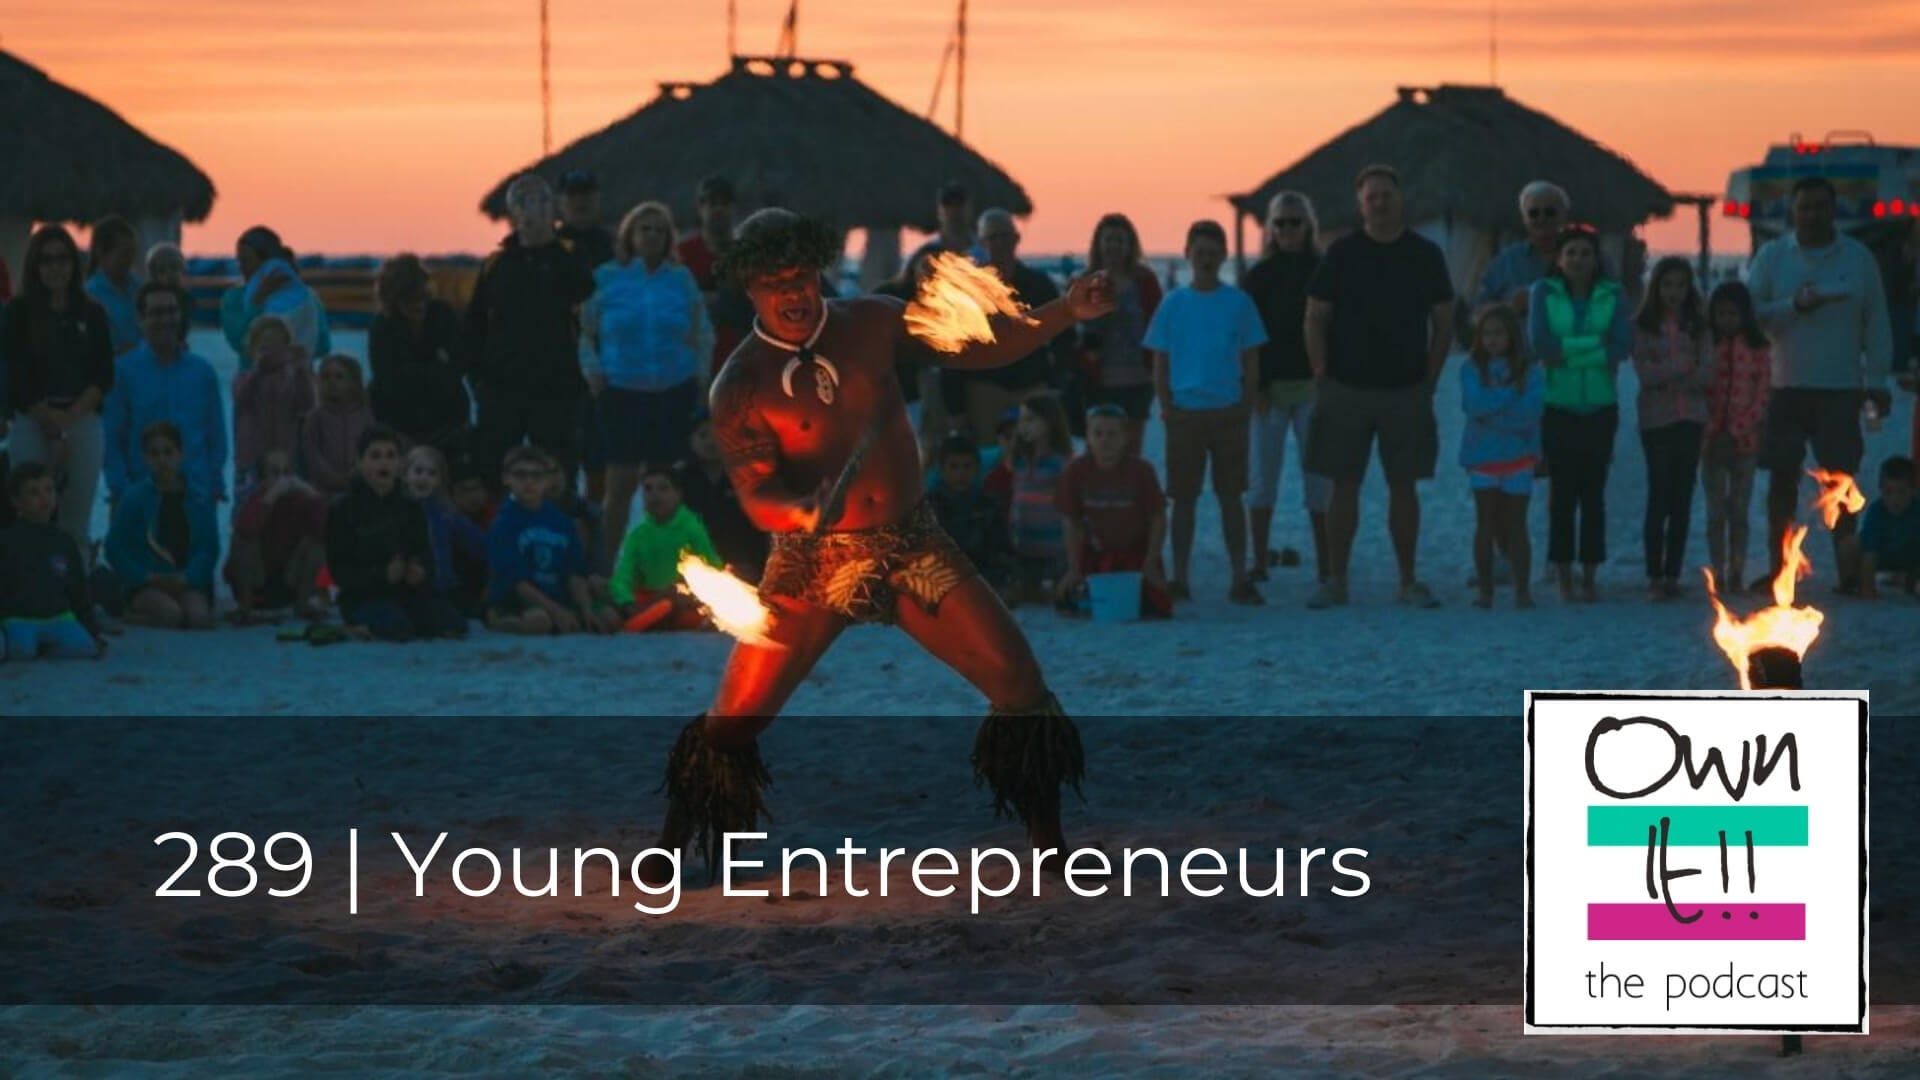 Own It! 289 | Young Entrepreneurs